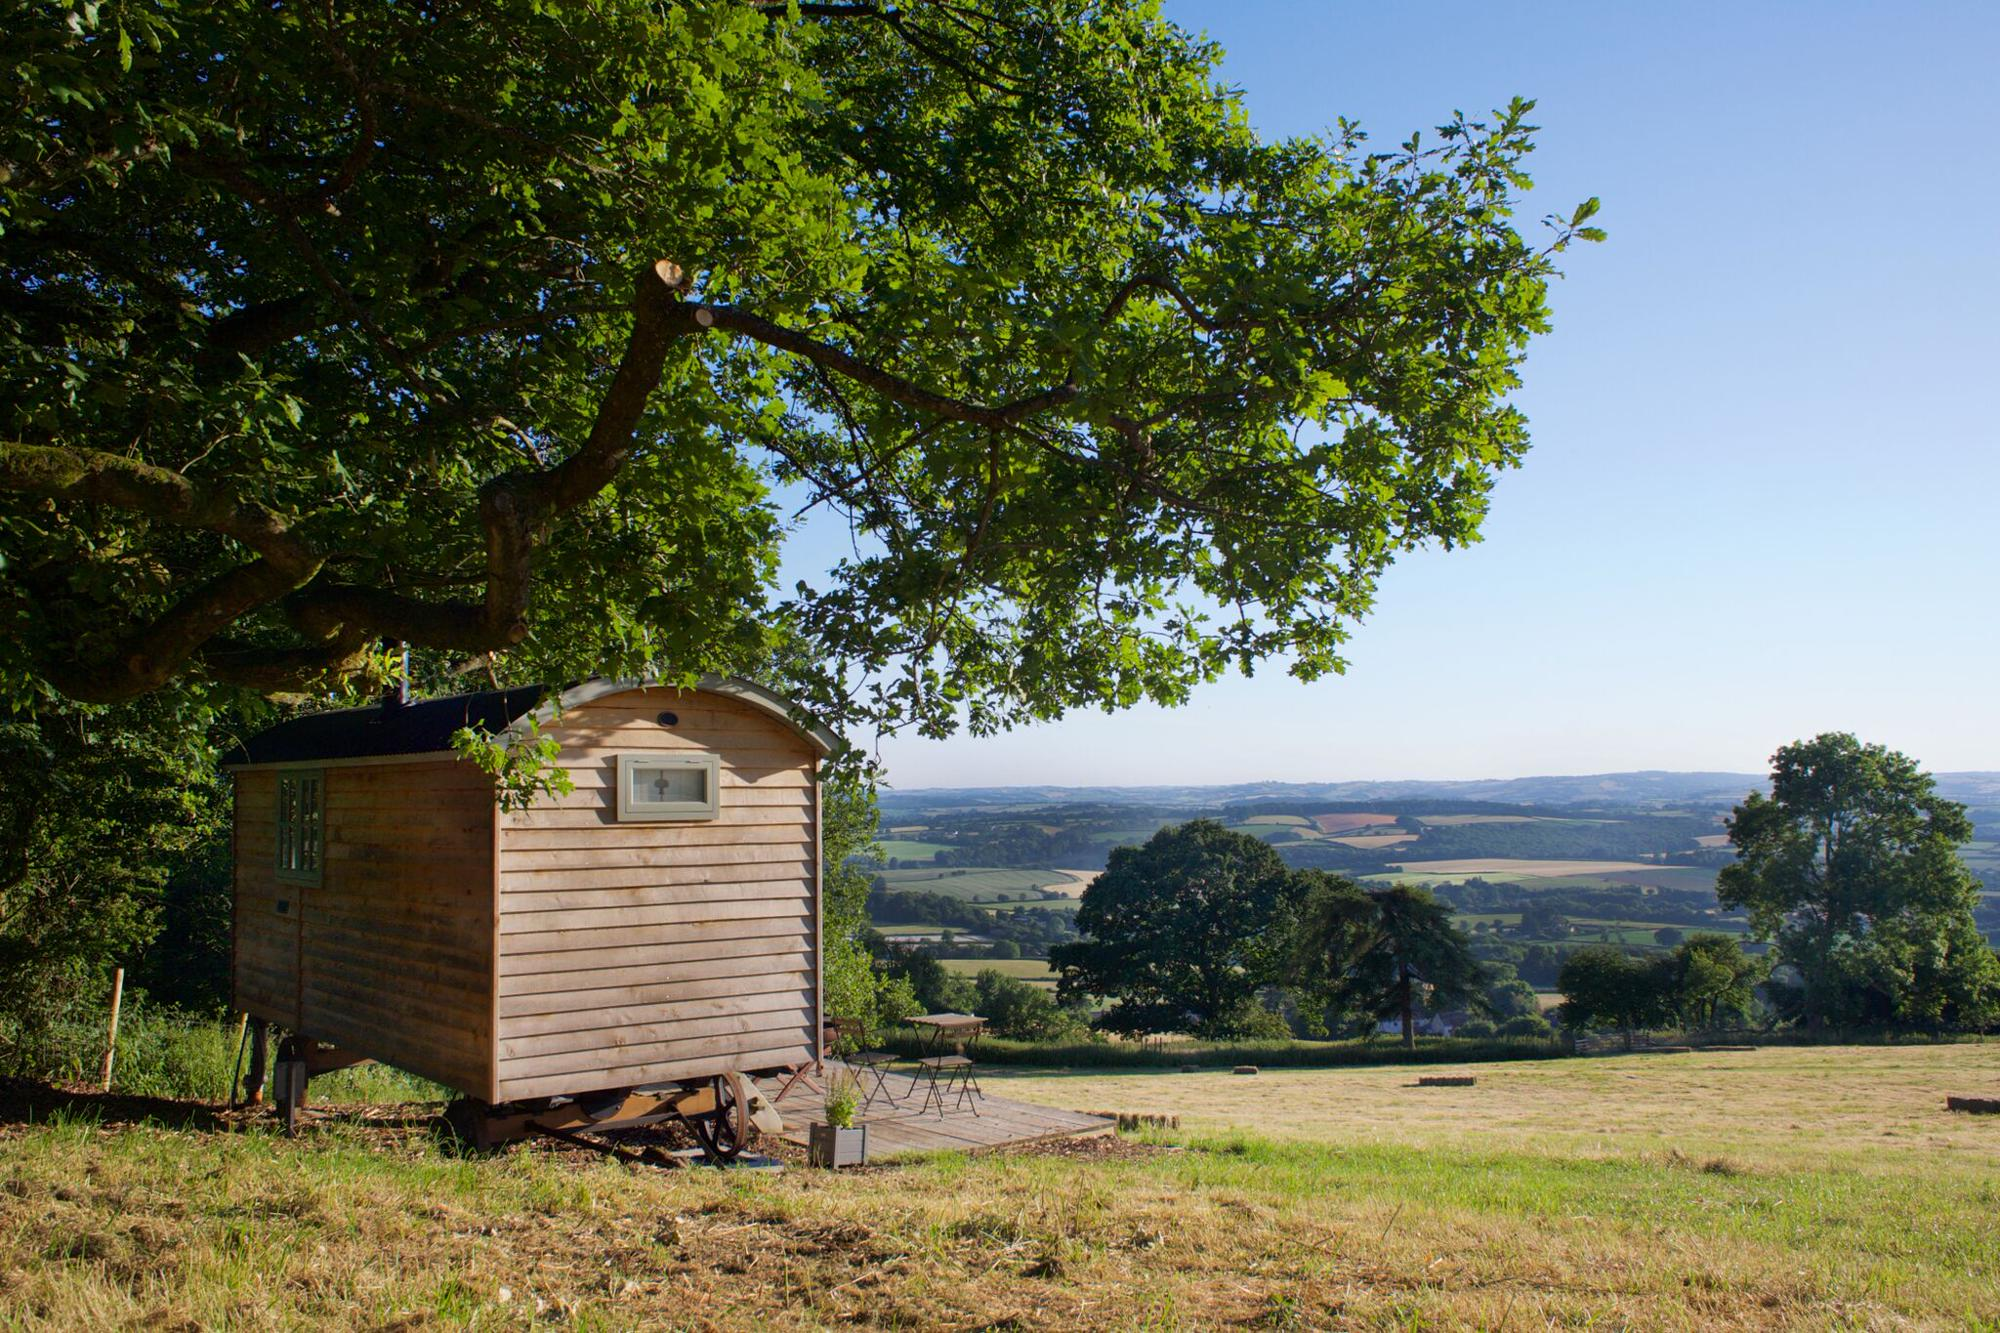 Glamping in Bridgwater holidays at Cool Places